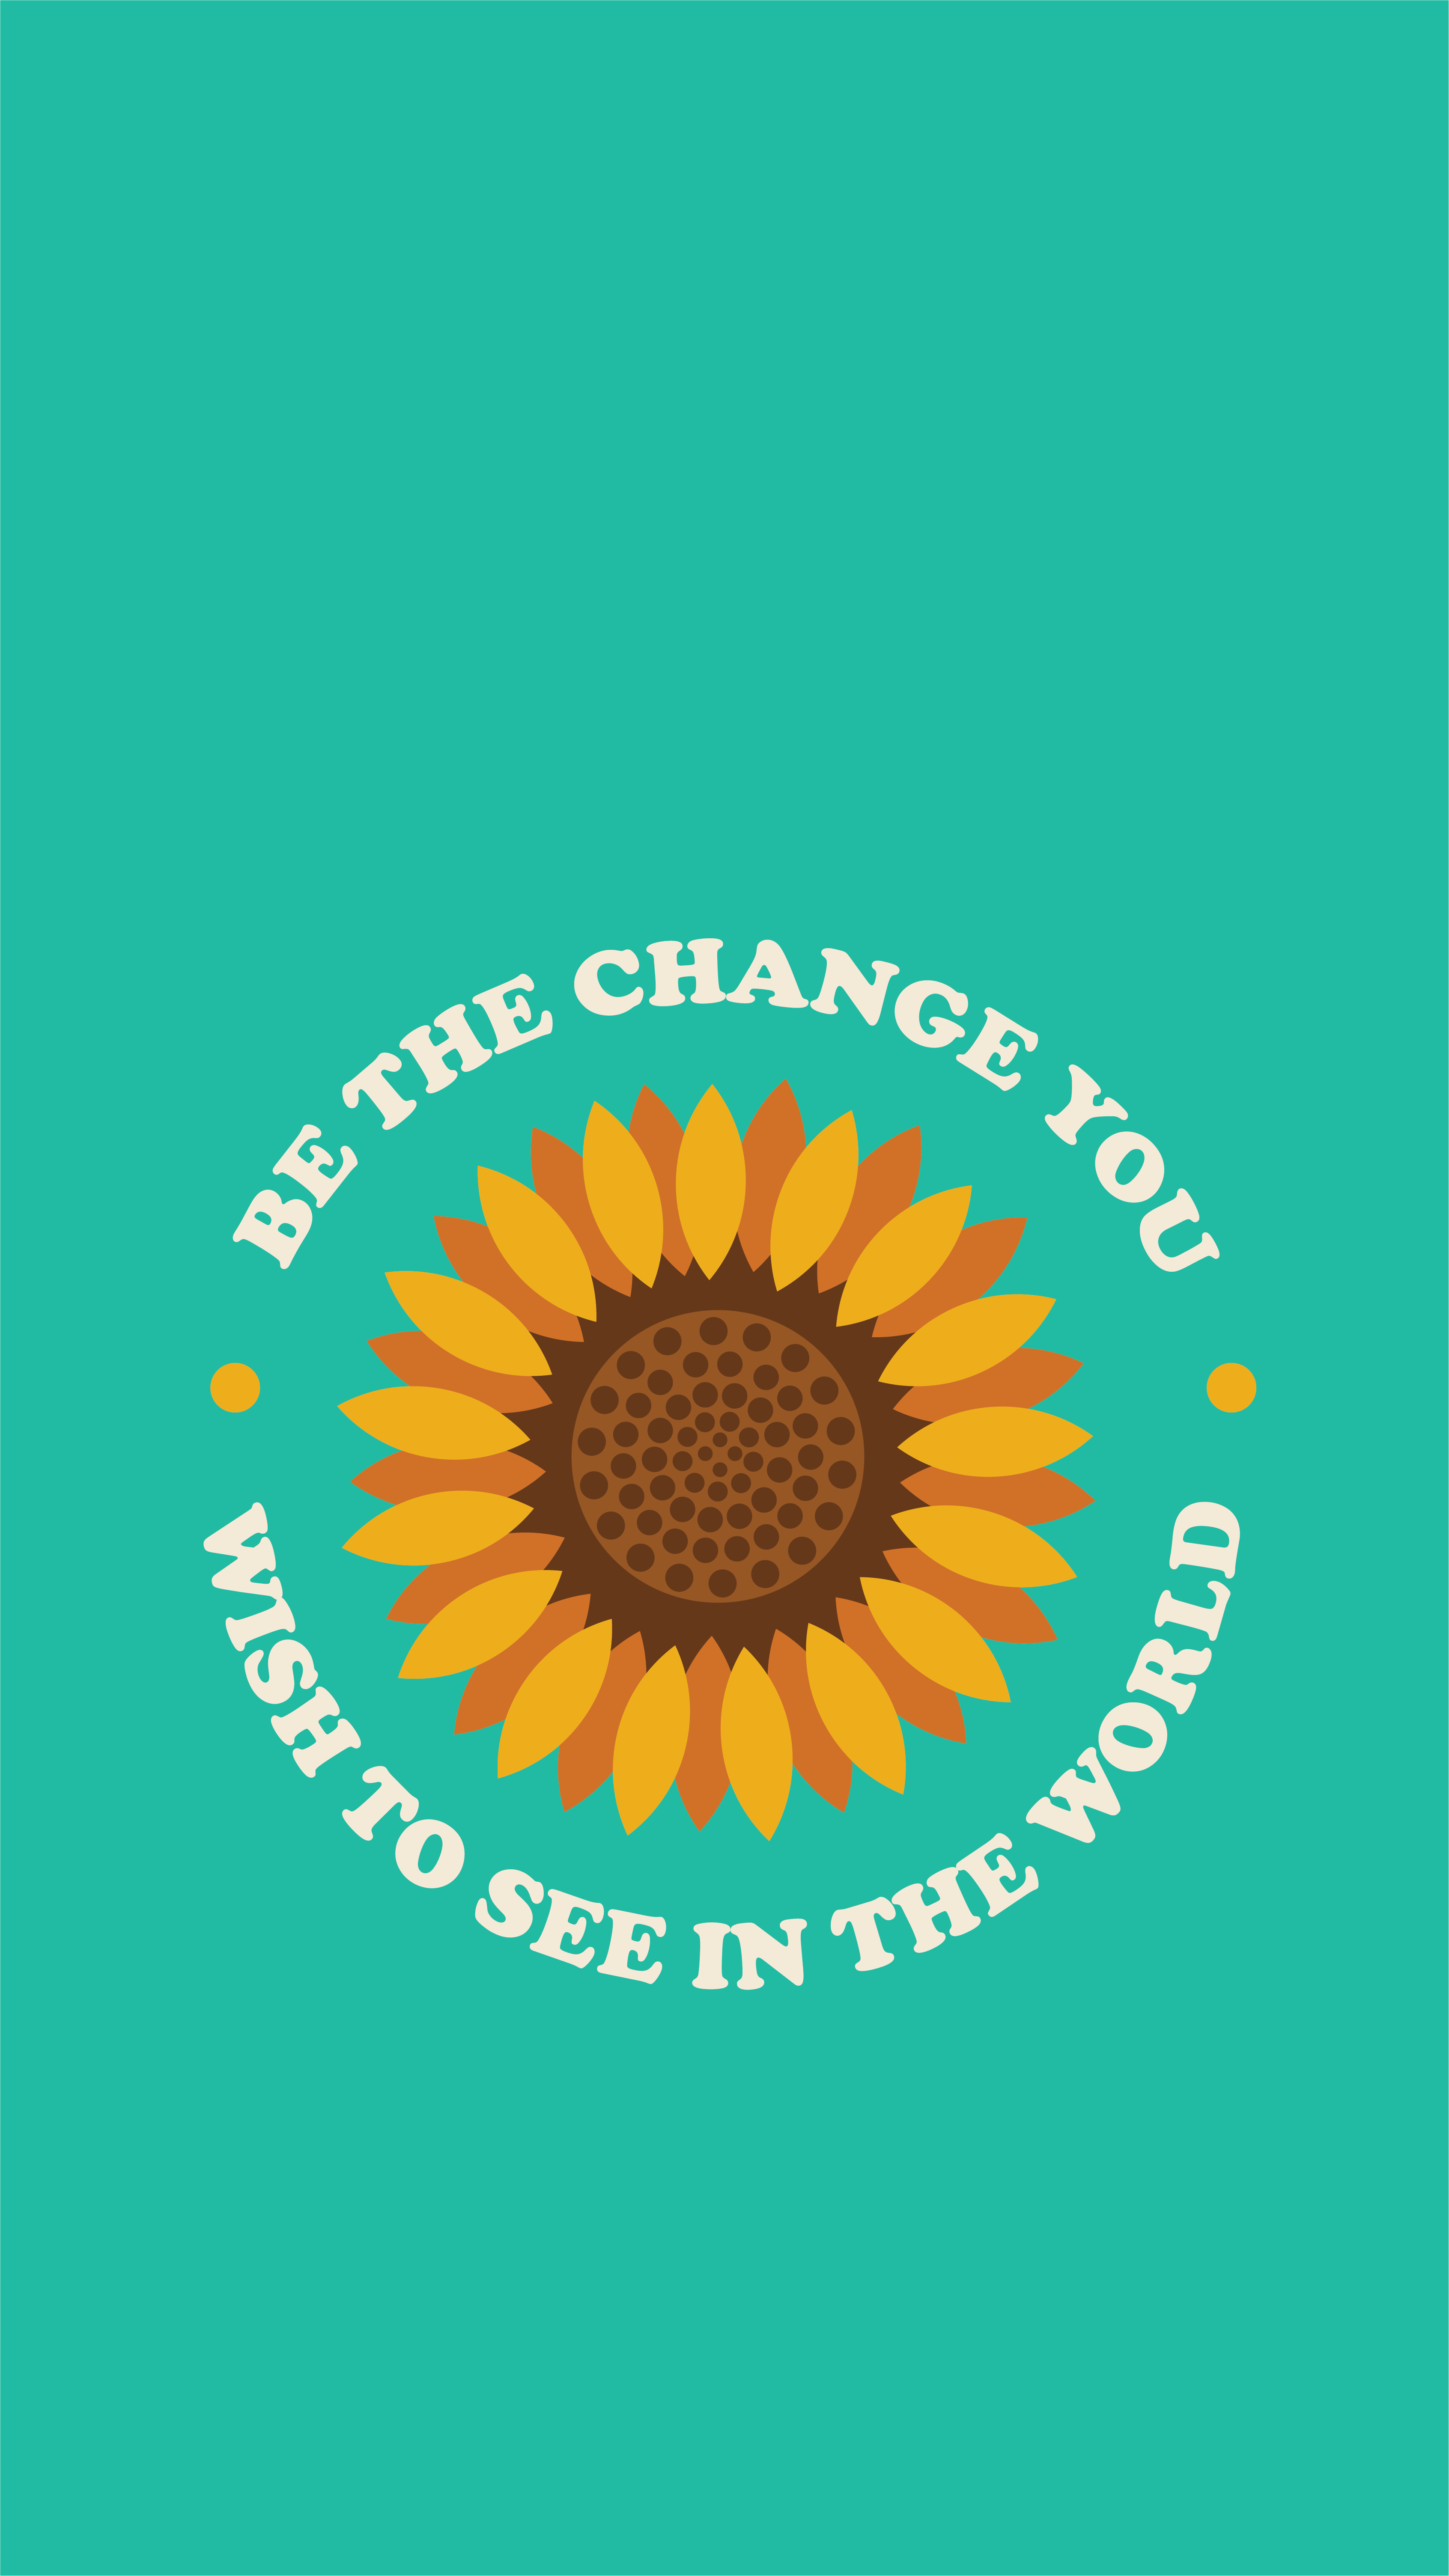 Be The Change Teal Iphone Wallpaper Ashley Scott Designs Sunflower Iphone Wallpaper Teal Wallpaper Iphone Free Iphone Wallpaper